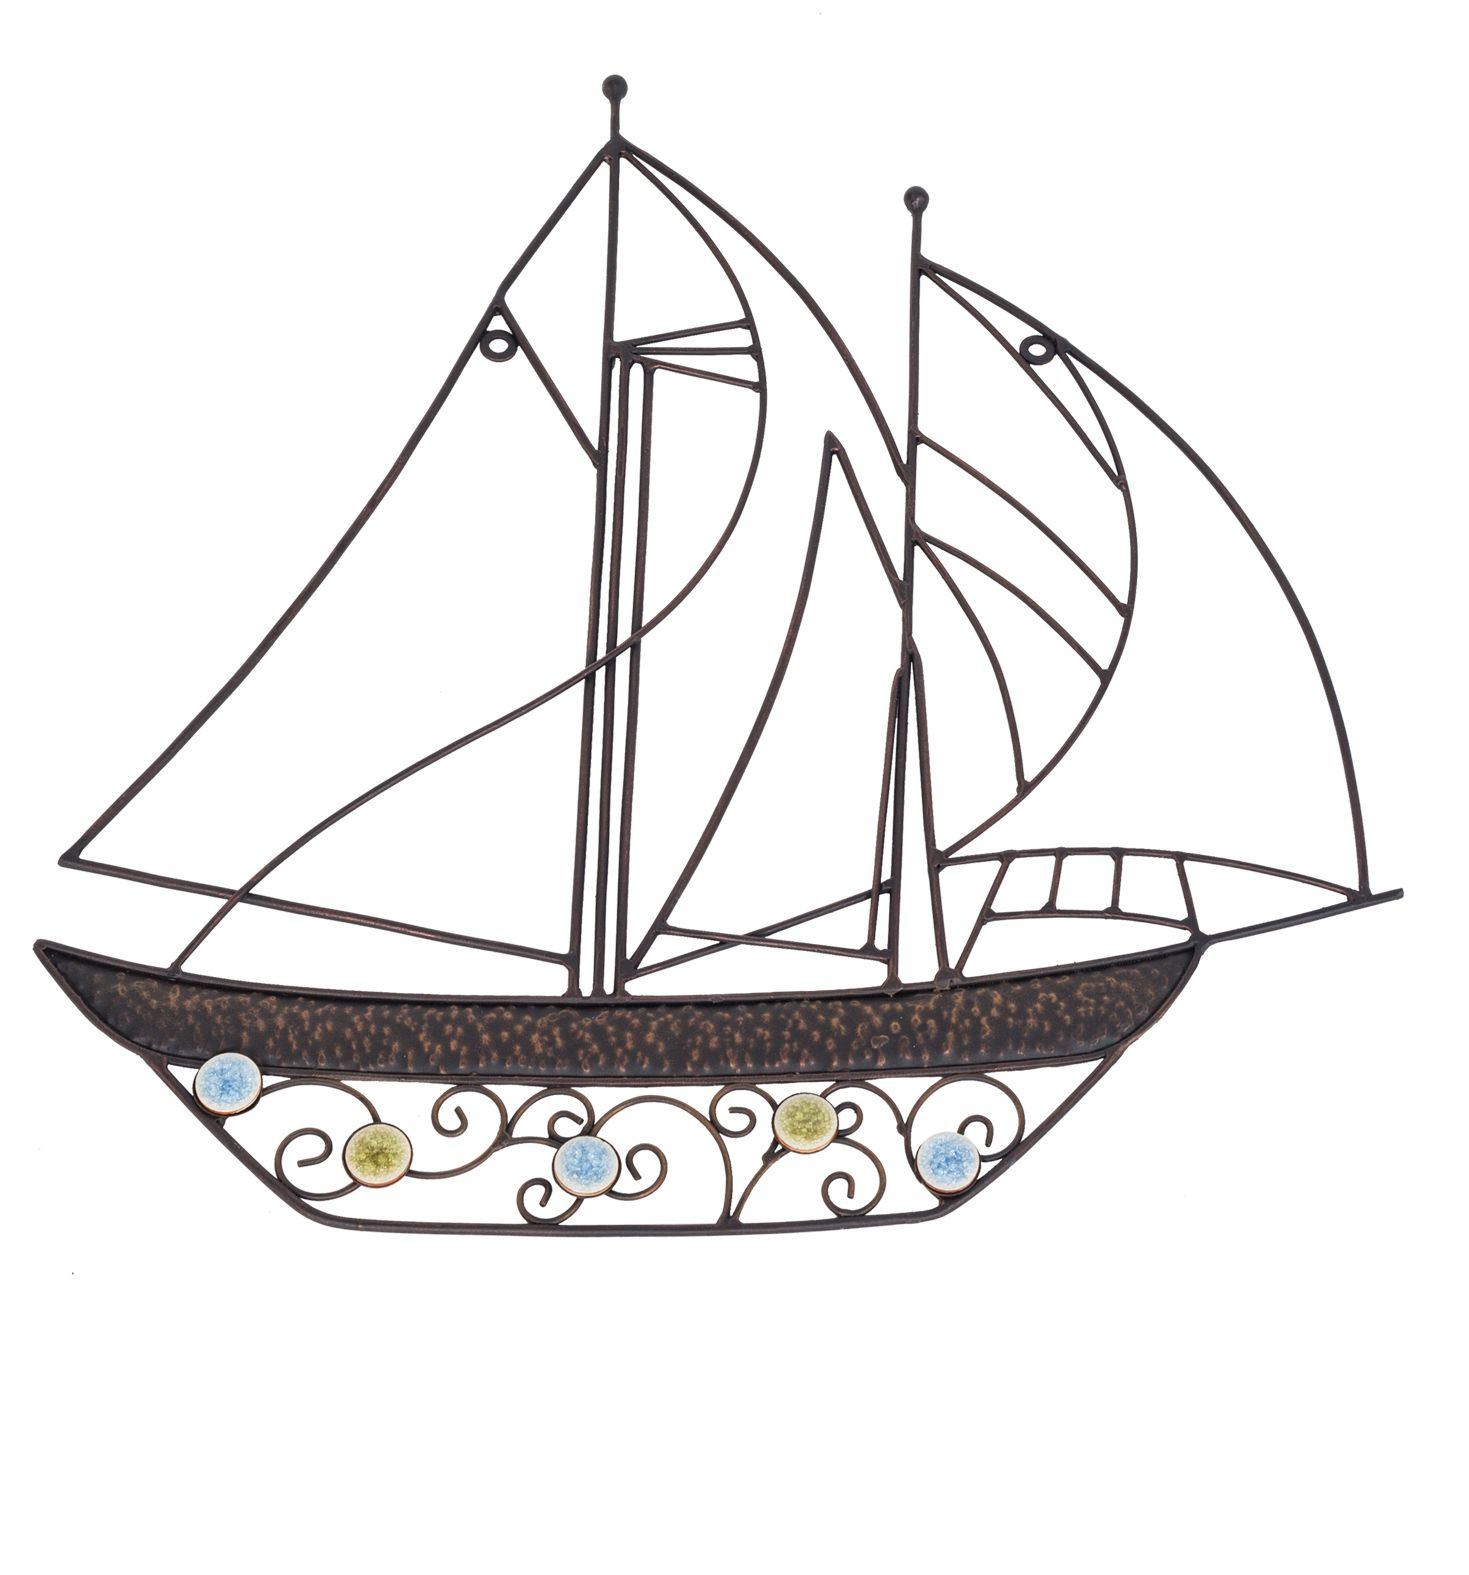 Image of La Hacienda Billowing sails wall art